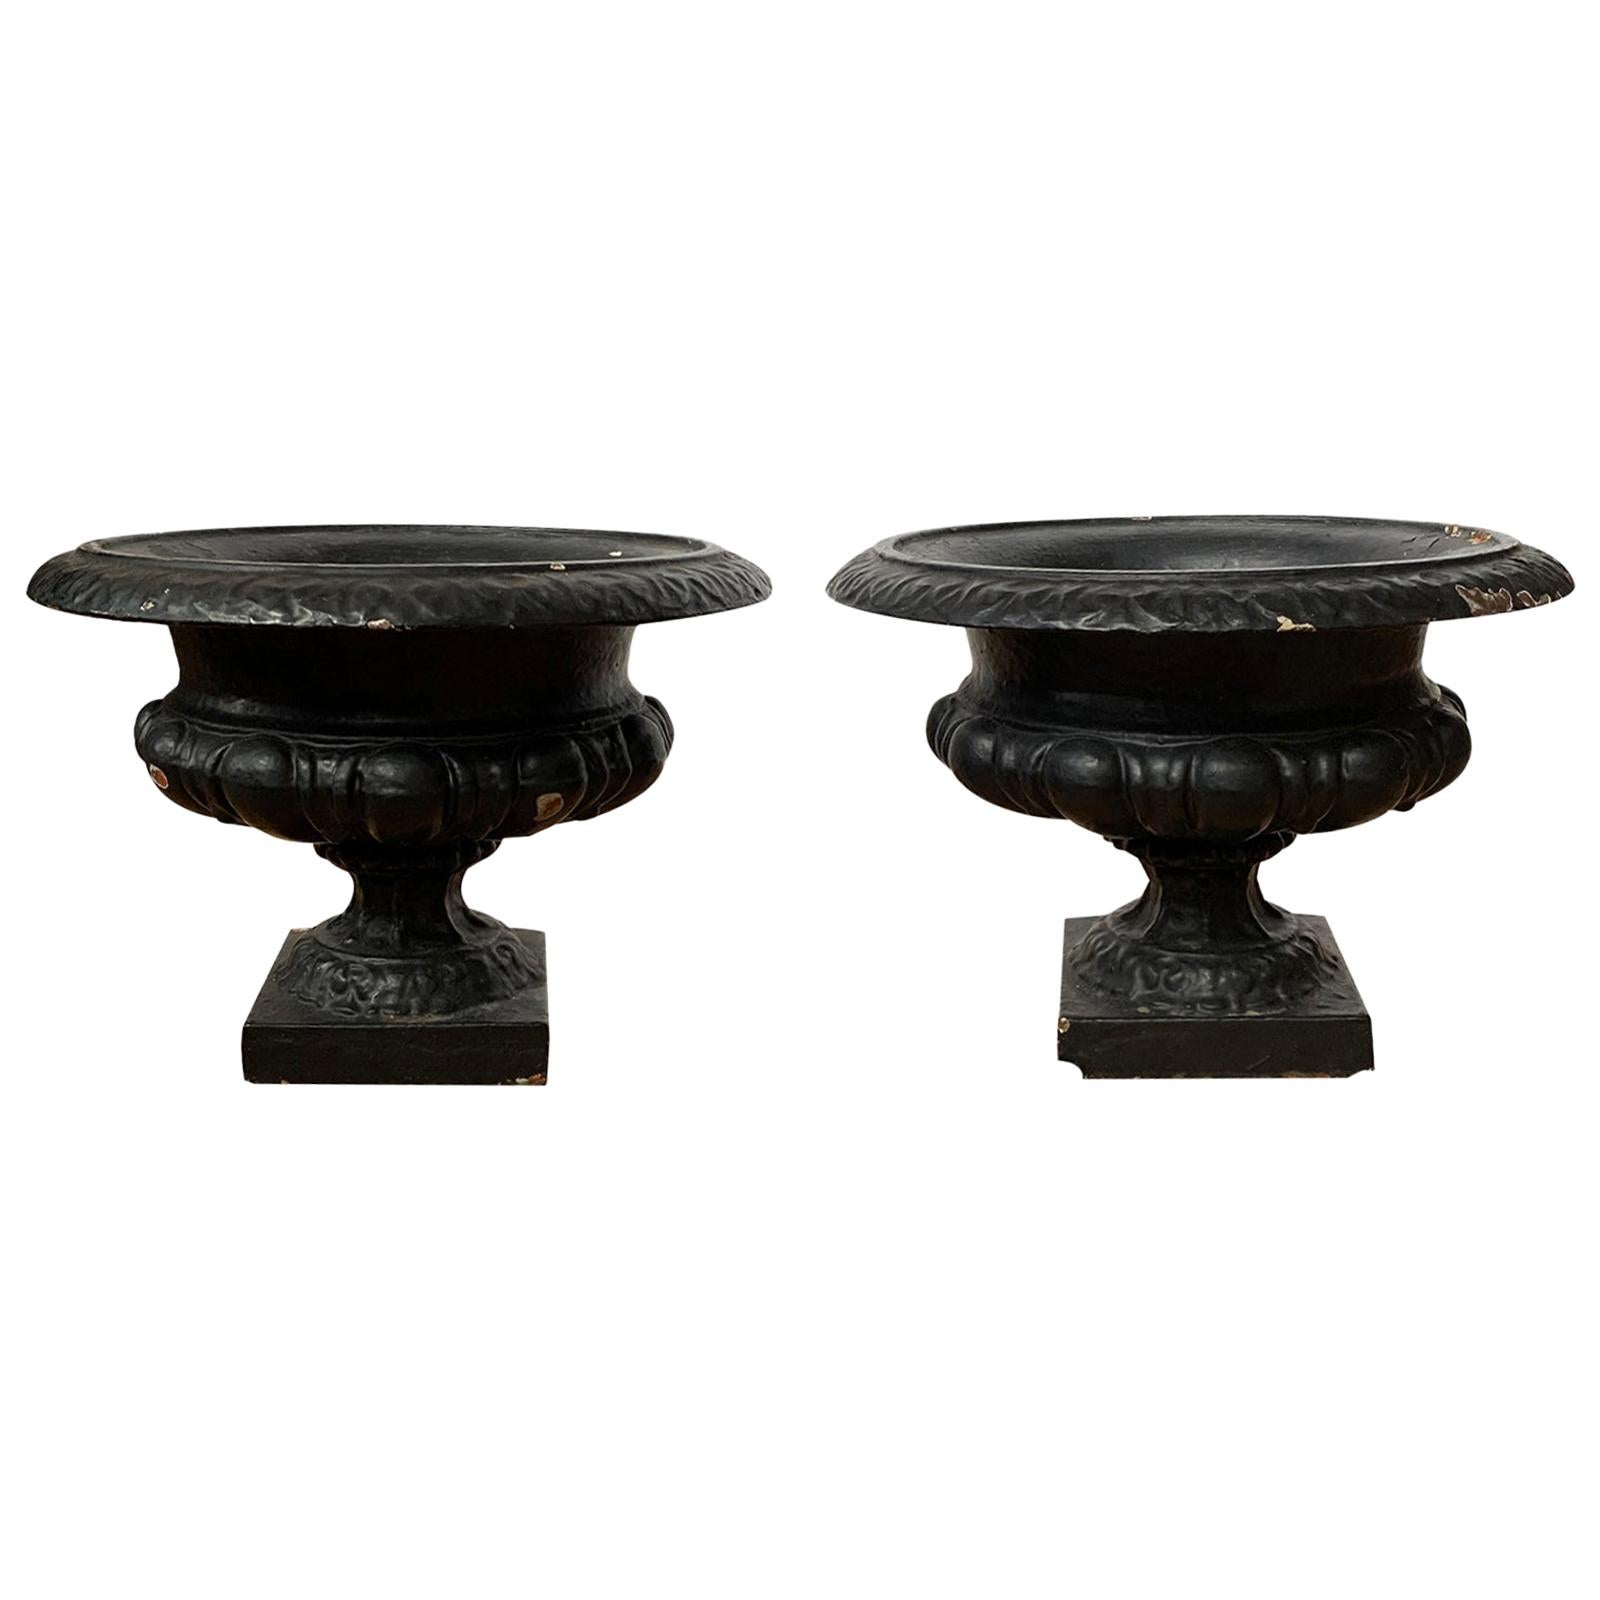 Pair of 19th-20th Century Neoclassical Iron Urns